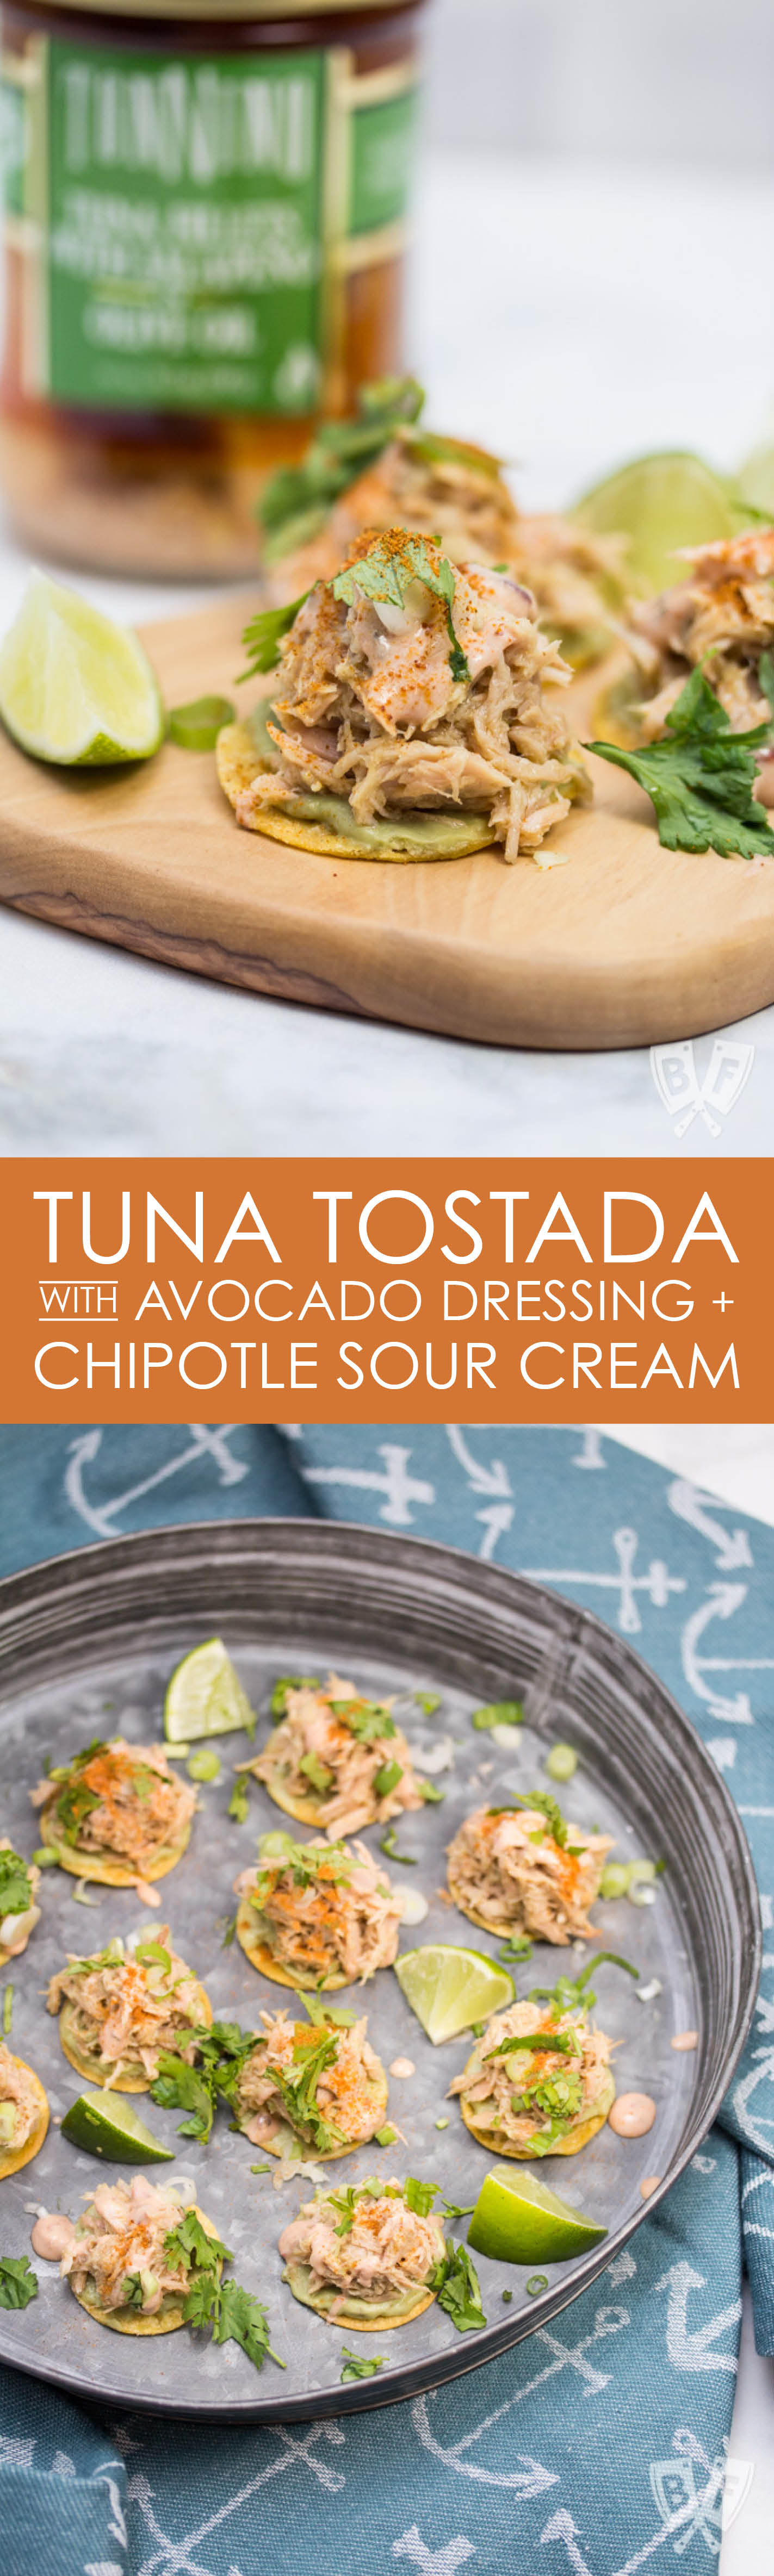 Tuna Tostada with Avocado Dressing + Chipotle Sour Cream (#ad): These bite-sized beauties have a Mexican flair that will wow your dinner party guests. You'll love how easy this tuna tostada appetizer is to put together!